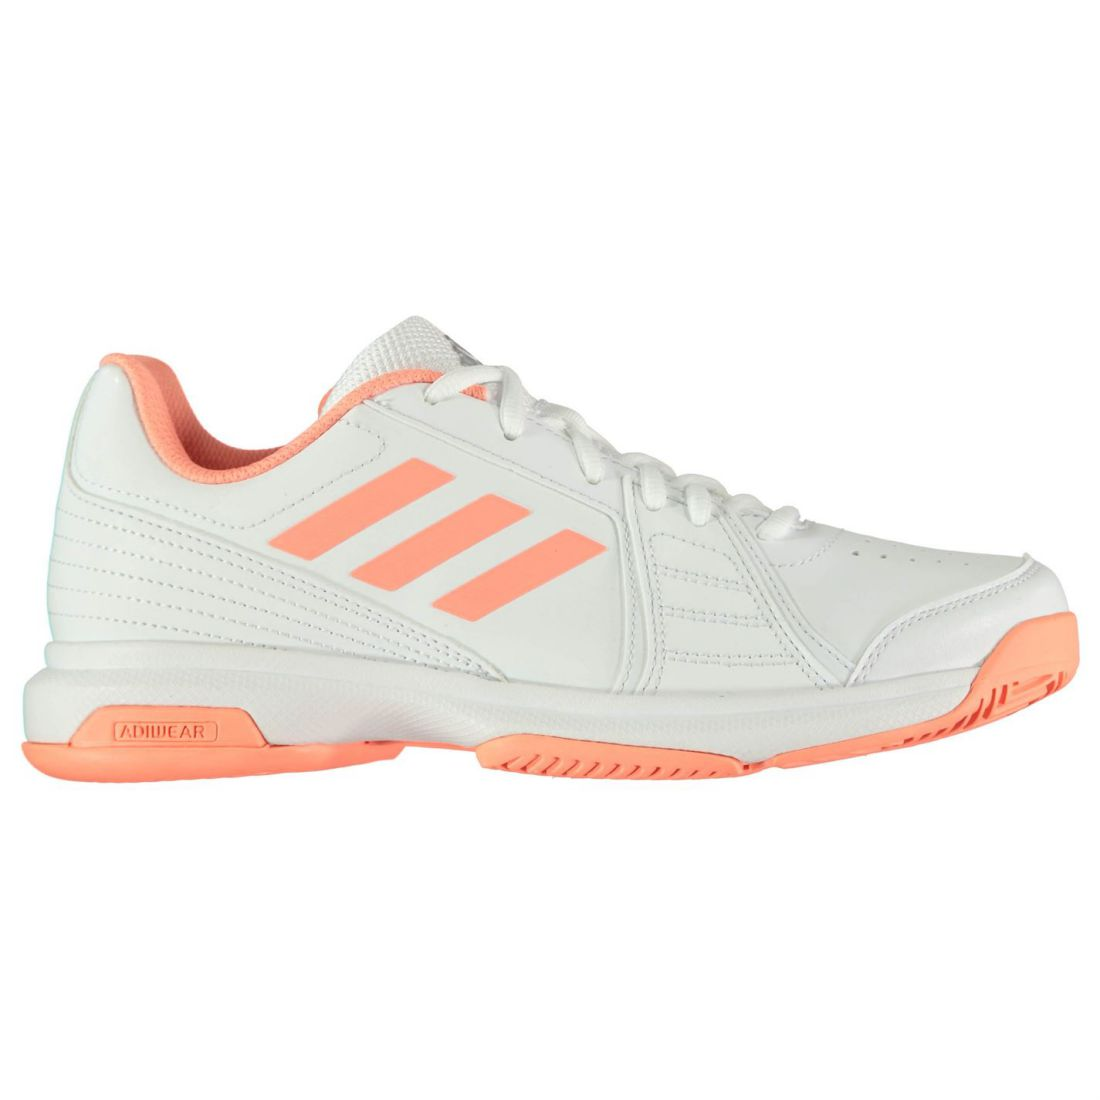 584f5b7f41b3a adidas Womens Aspire Tennis Shoes Lace Up Breathable Ventilation Holes